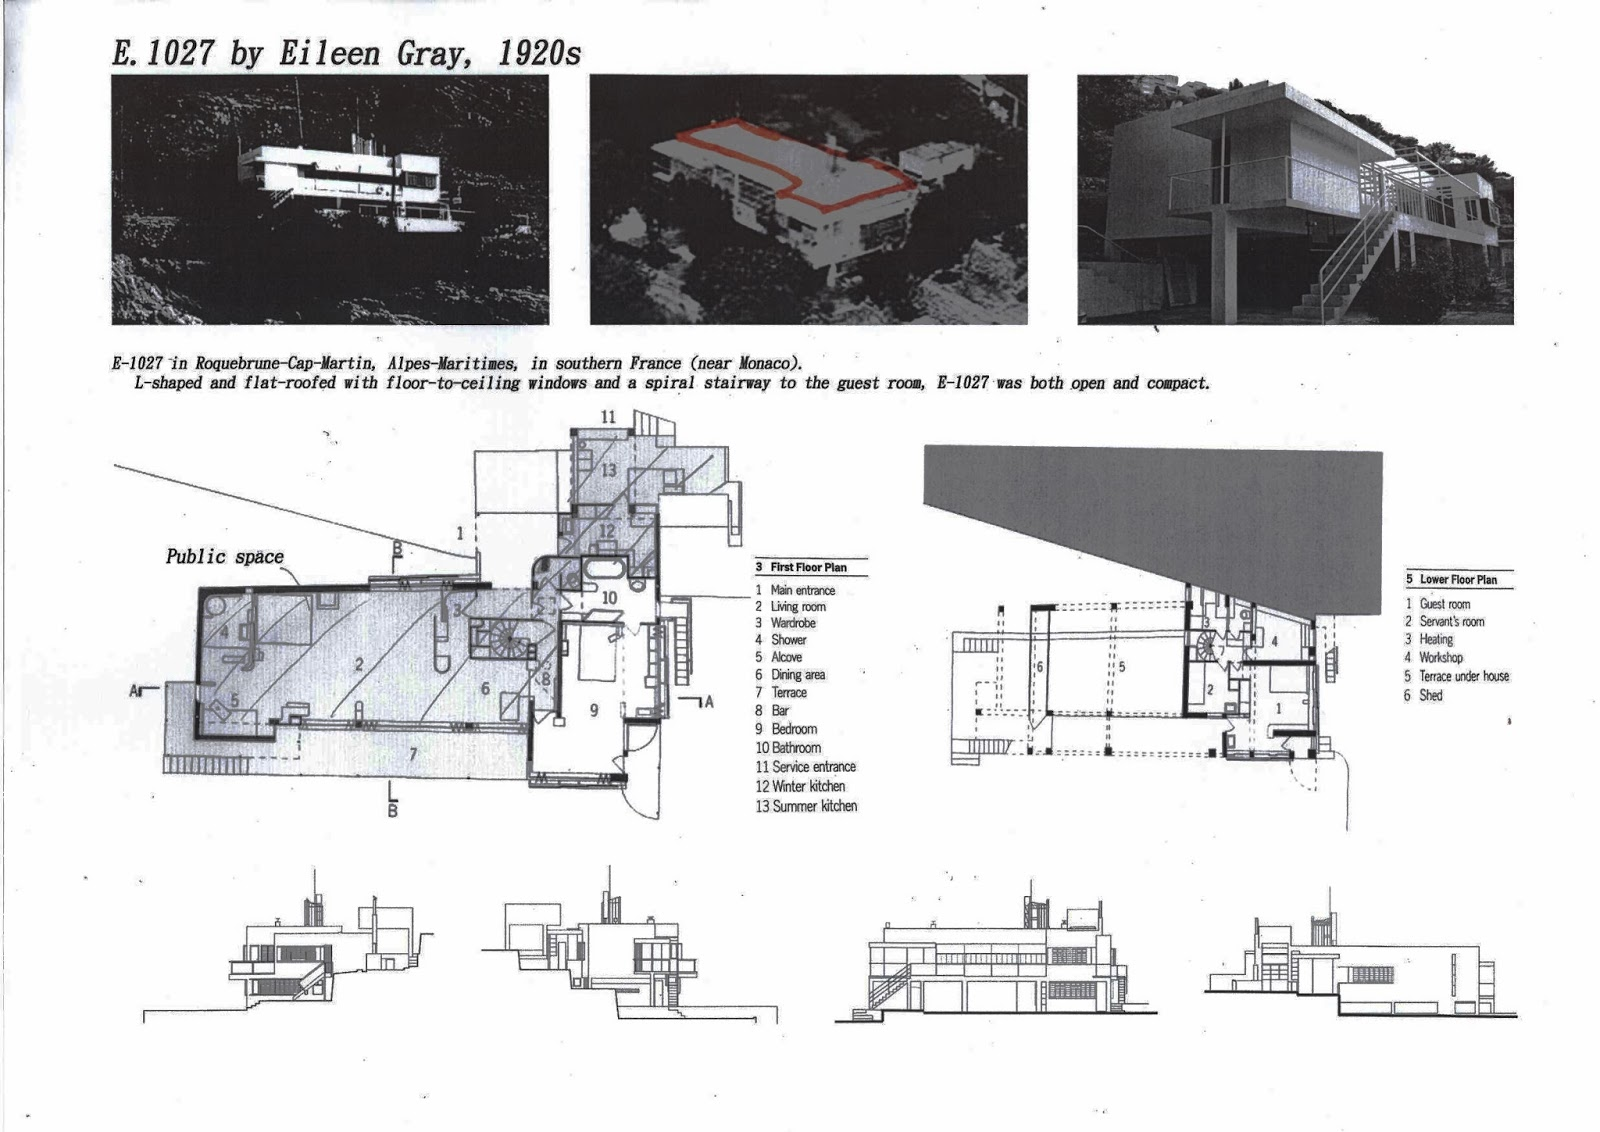 eileen gray e1027 floor plan - photo #13